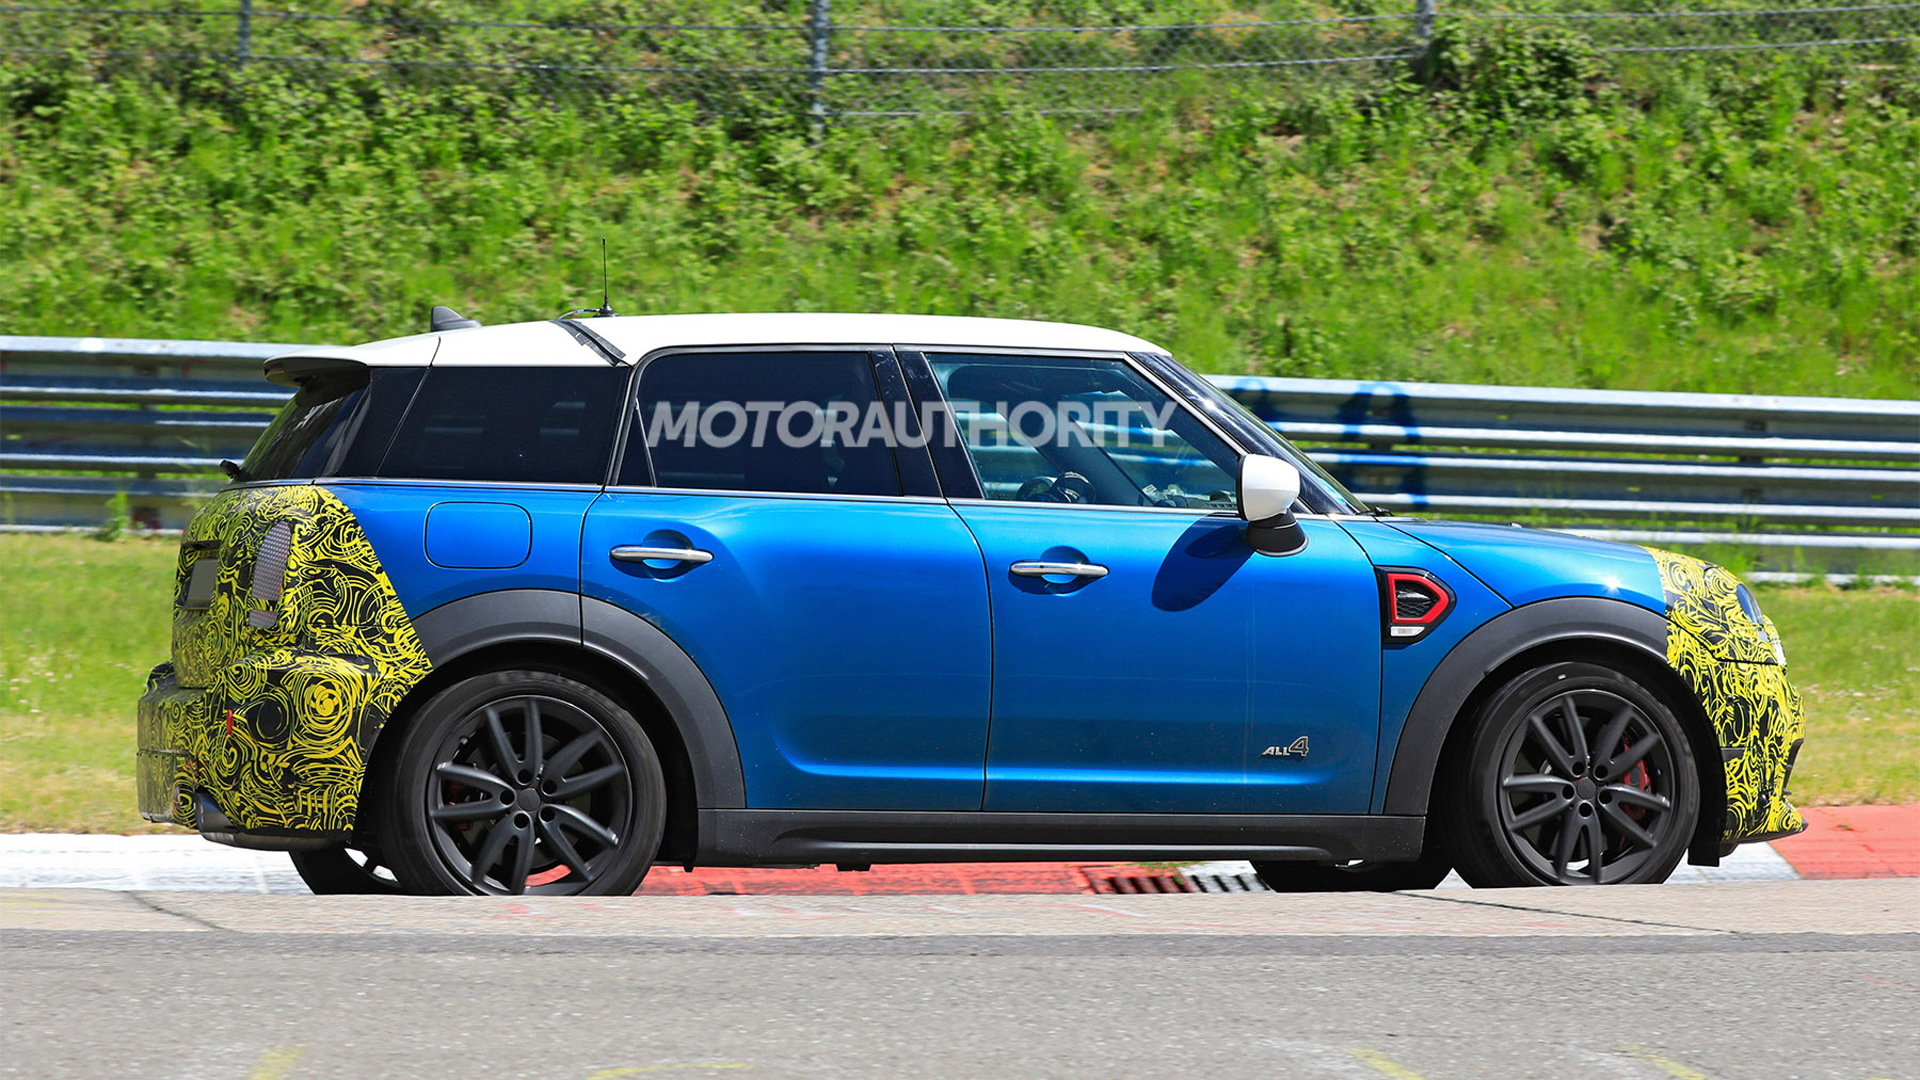 2021 Mini Countryman facelift spy shots - Photo credit: S. Baldauf/SB-Medien